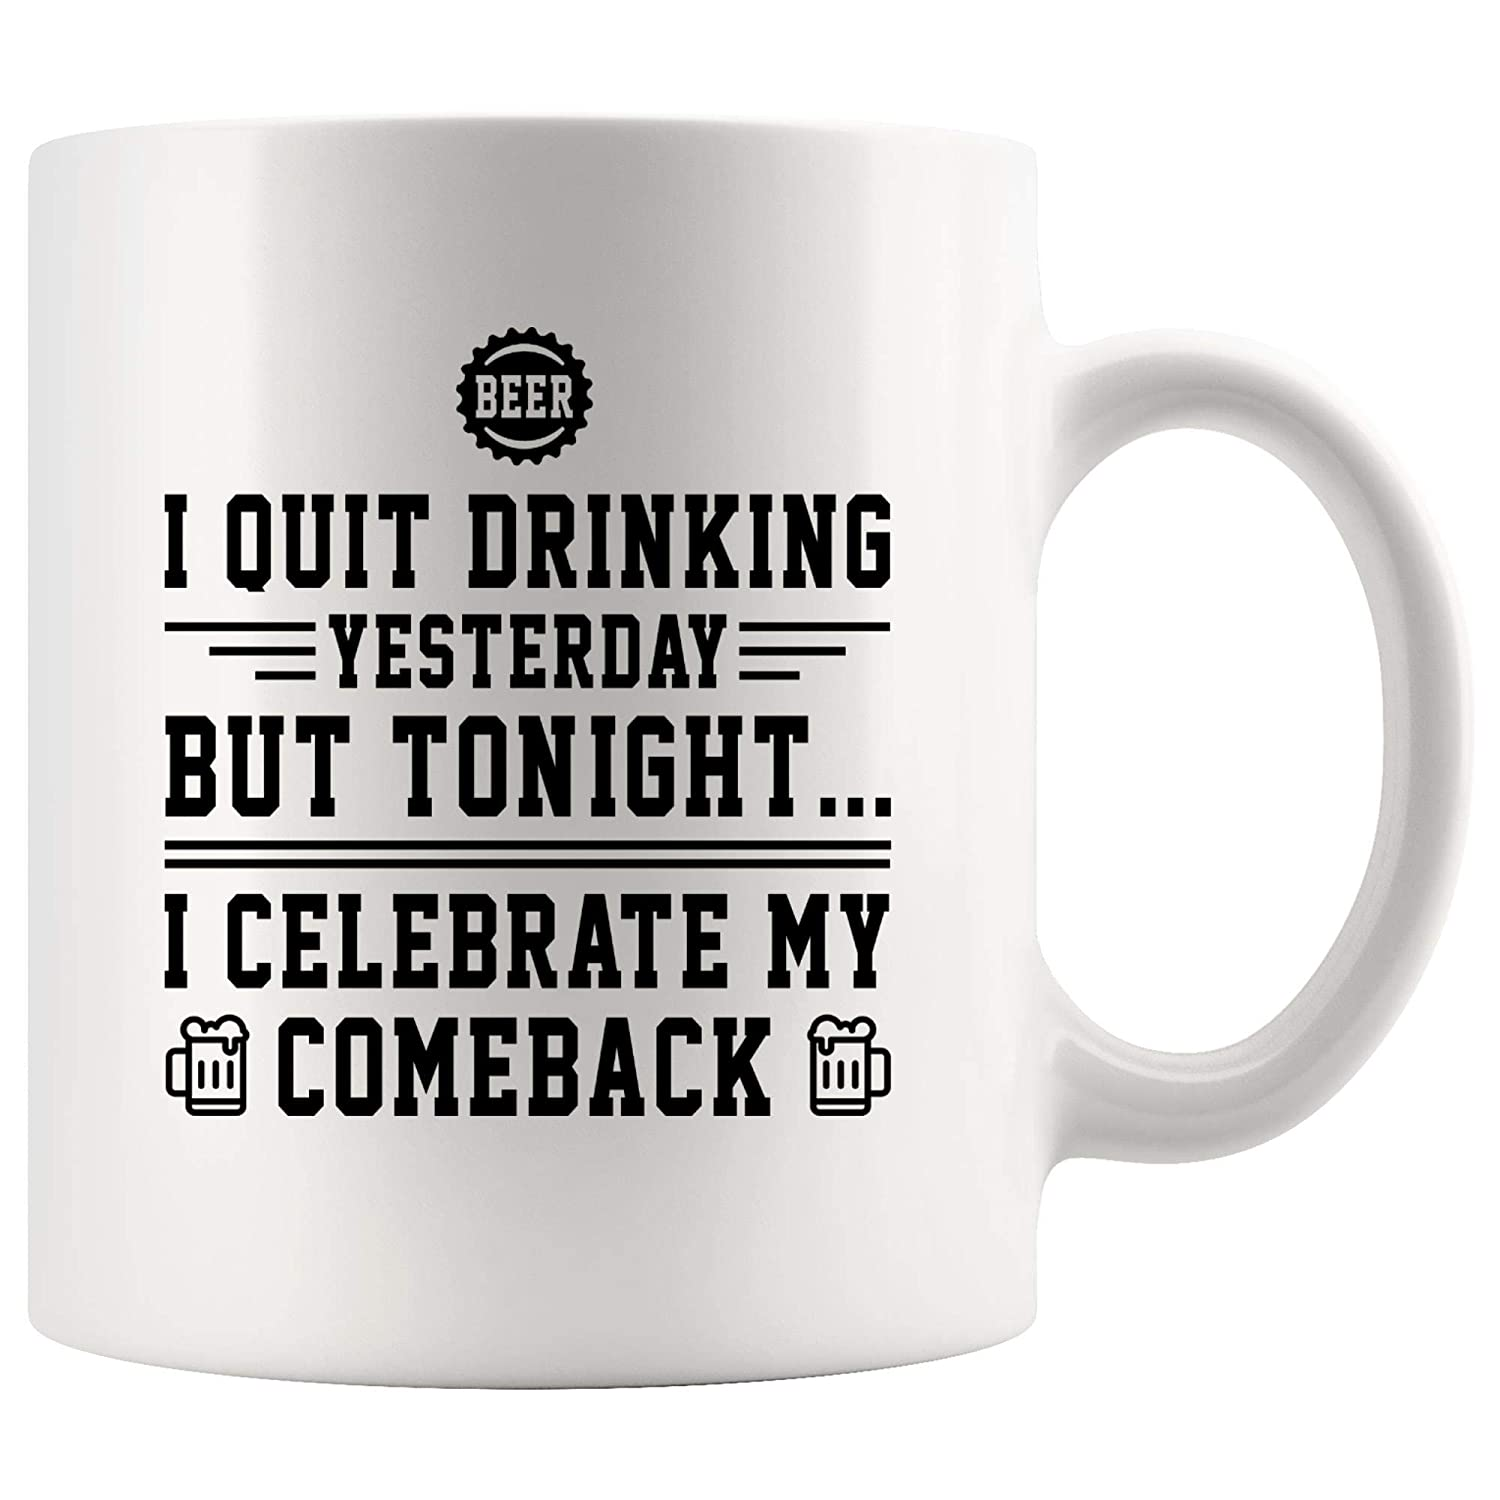 Funny Coffee Mug Beer Cup - Quit Drinking Yesterday Celebrate Comeback Tonight Joke Gag Sarcasm Tea Mugs Sarcastic Quotes Tea Mugs Meme Humor Men Women Kids Gift Fun Sayings Humorous Gifts